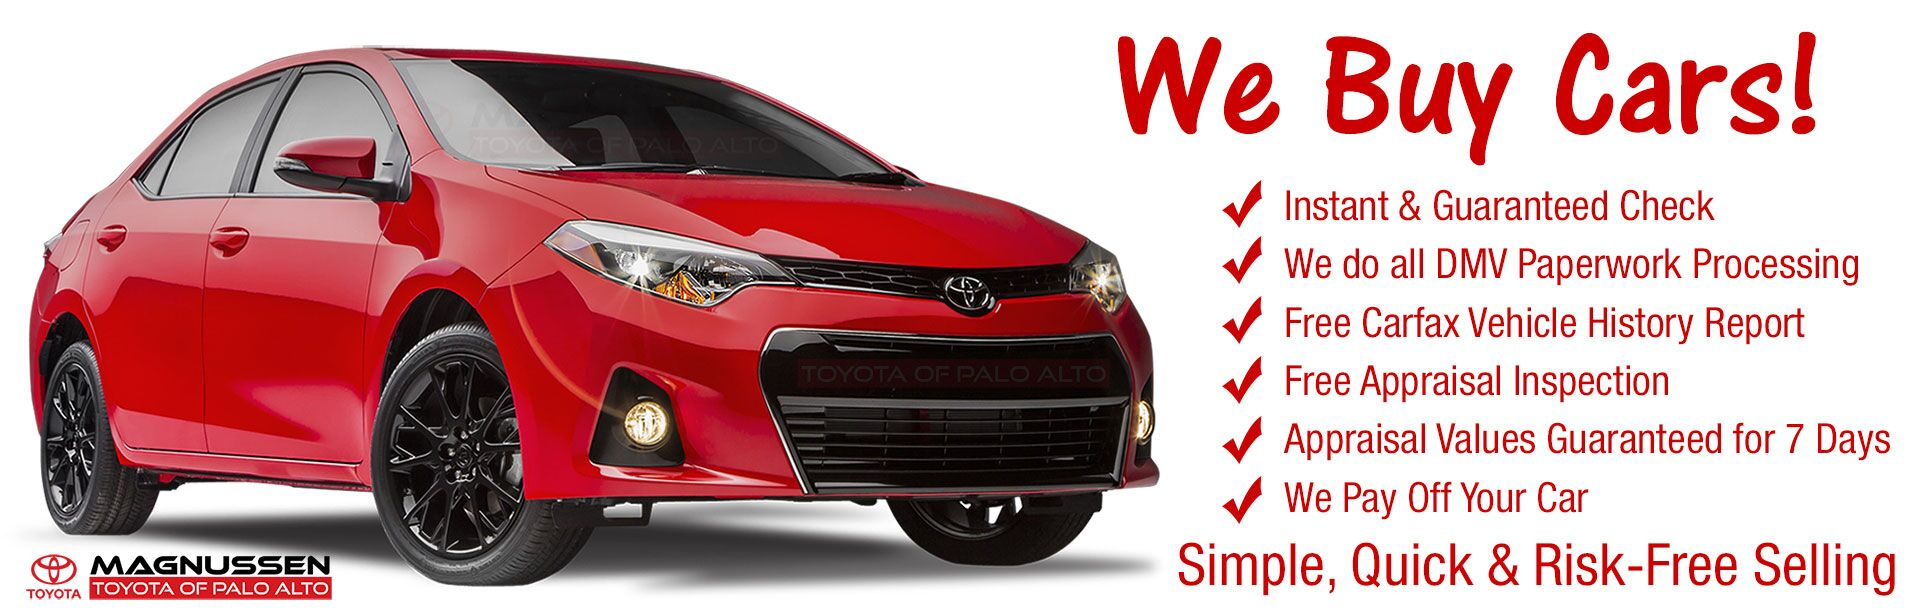 We buy cars - Simple, Quick &  Risk-free Process